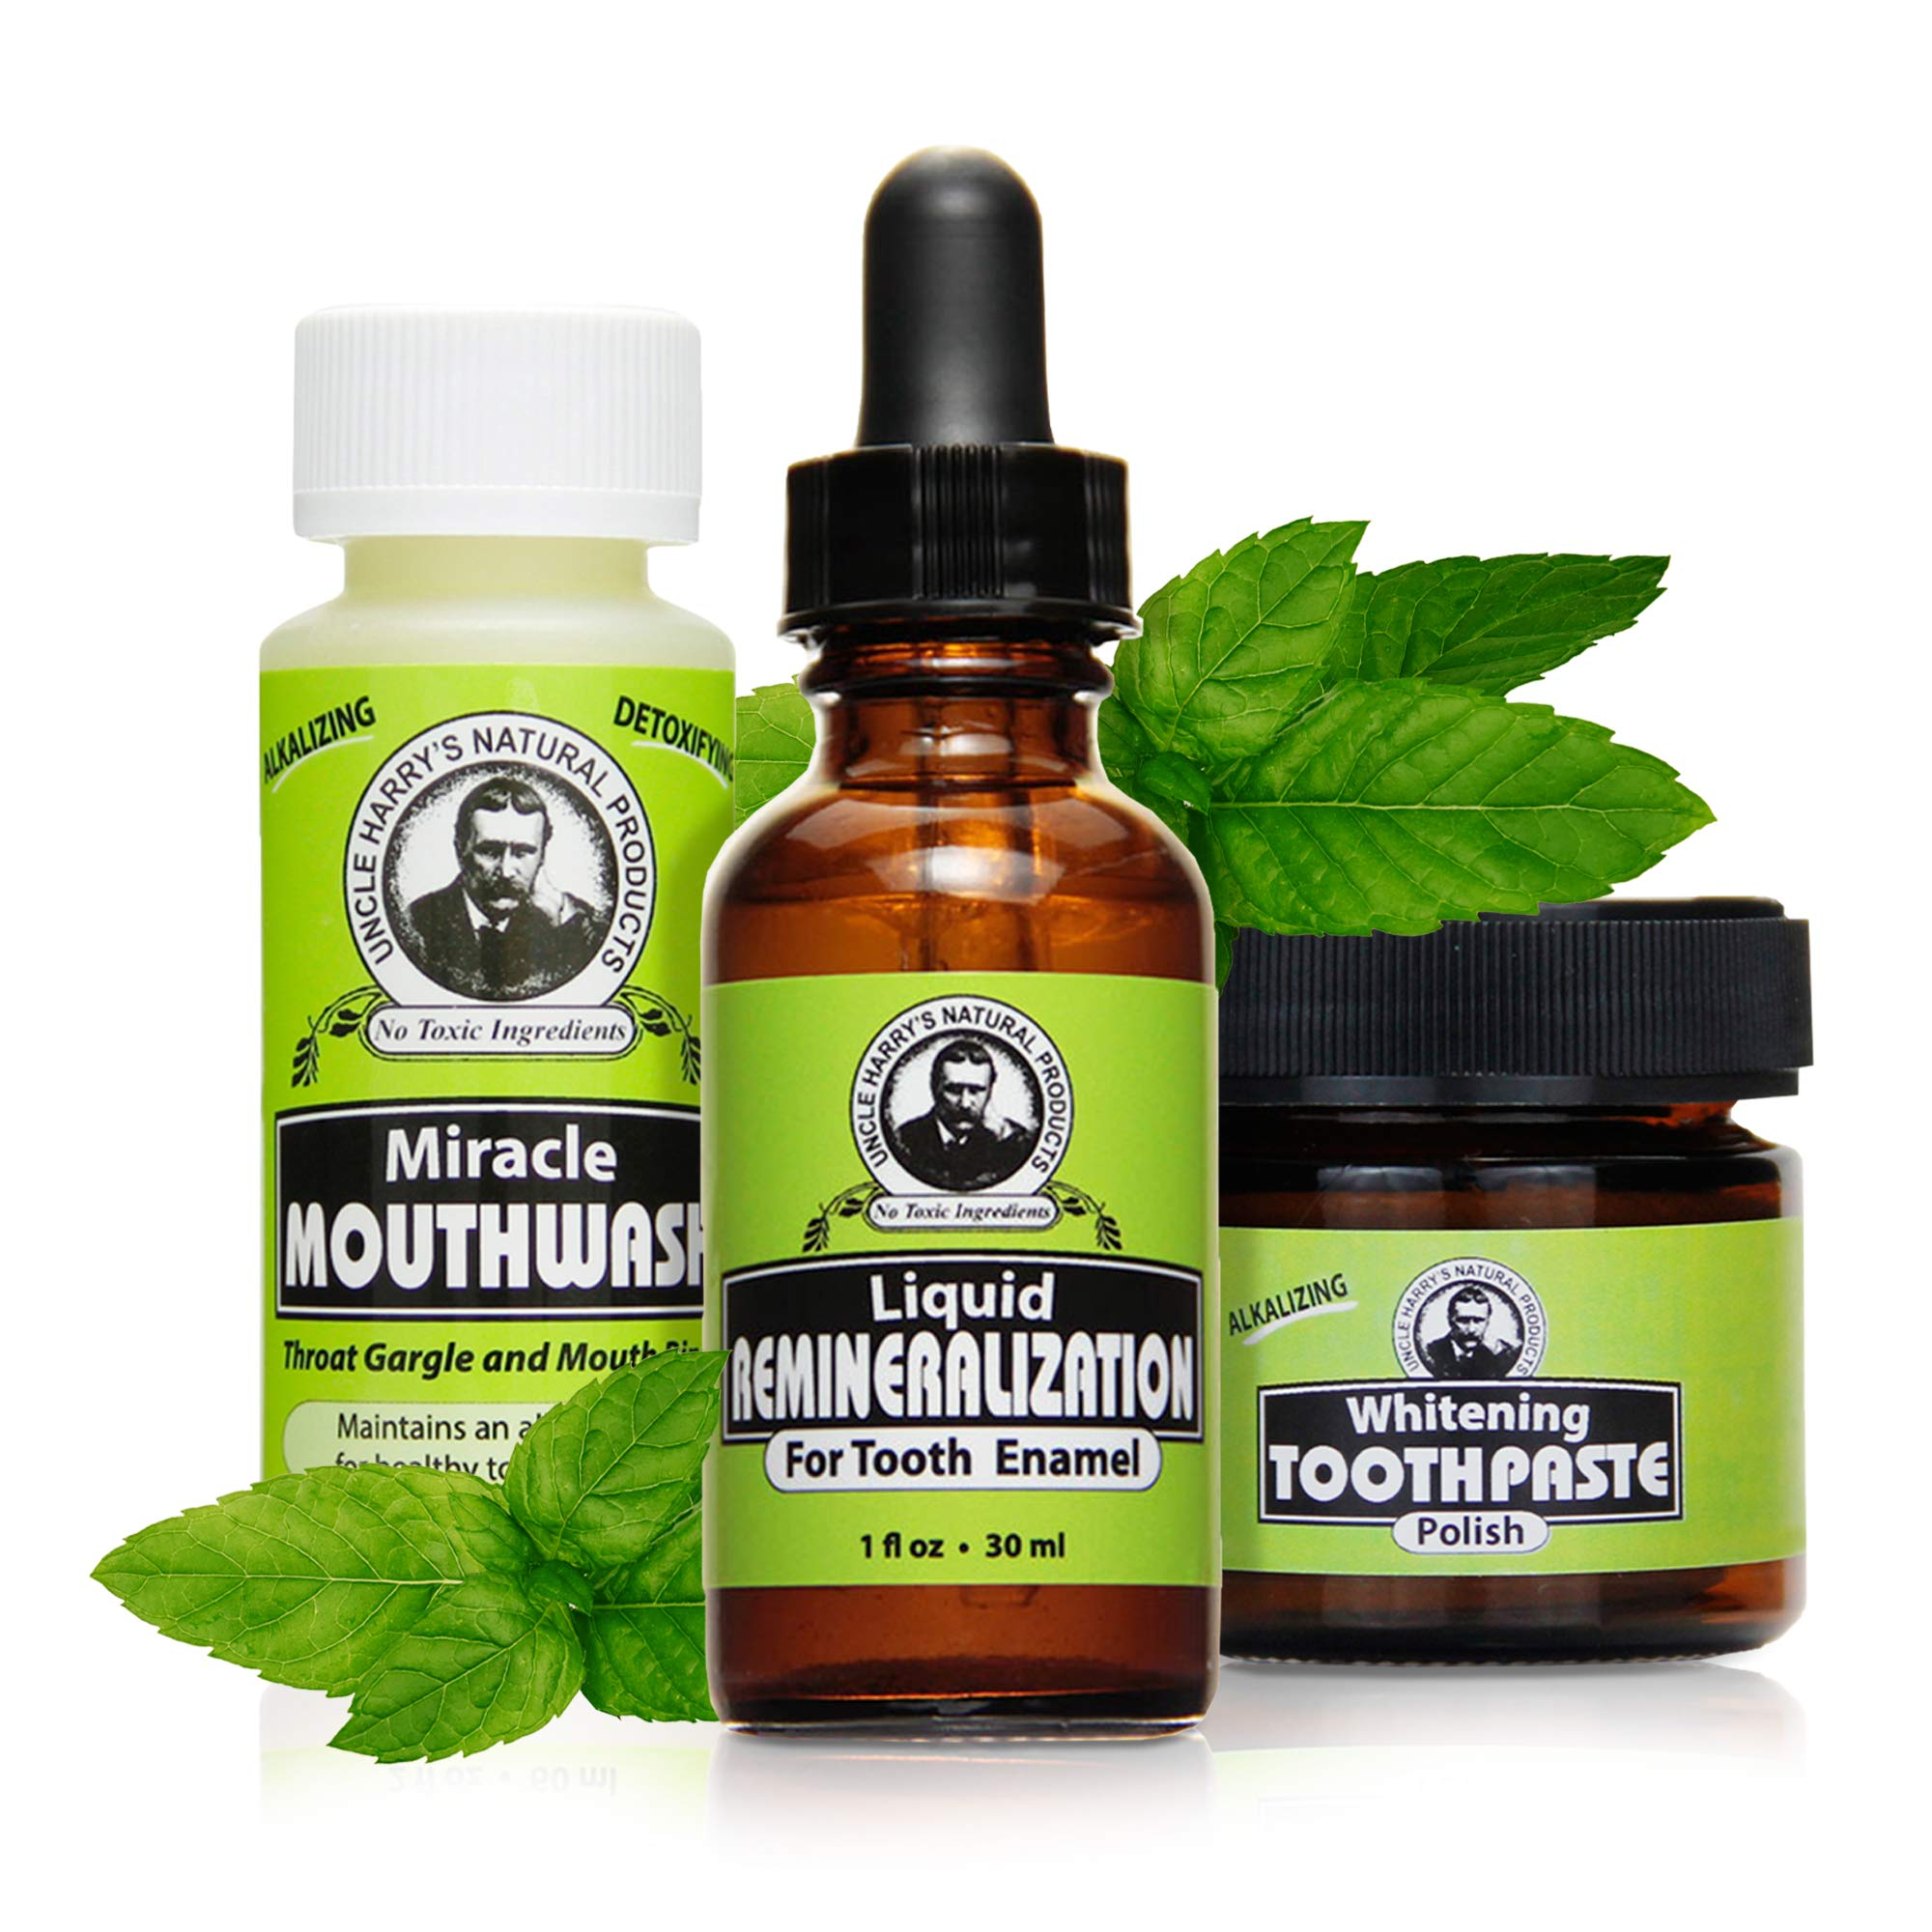 Uncle Harry's Natural Remineralization Kit with Tooth Whitening - 3 Products Strengthen Weak Enamel, Brighten Smile, & Correct Oral Care Issues (1 kit)